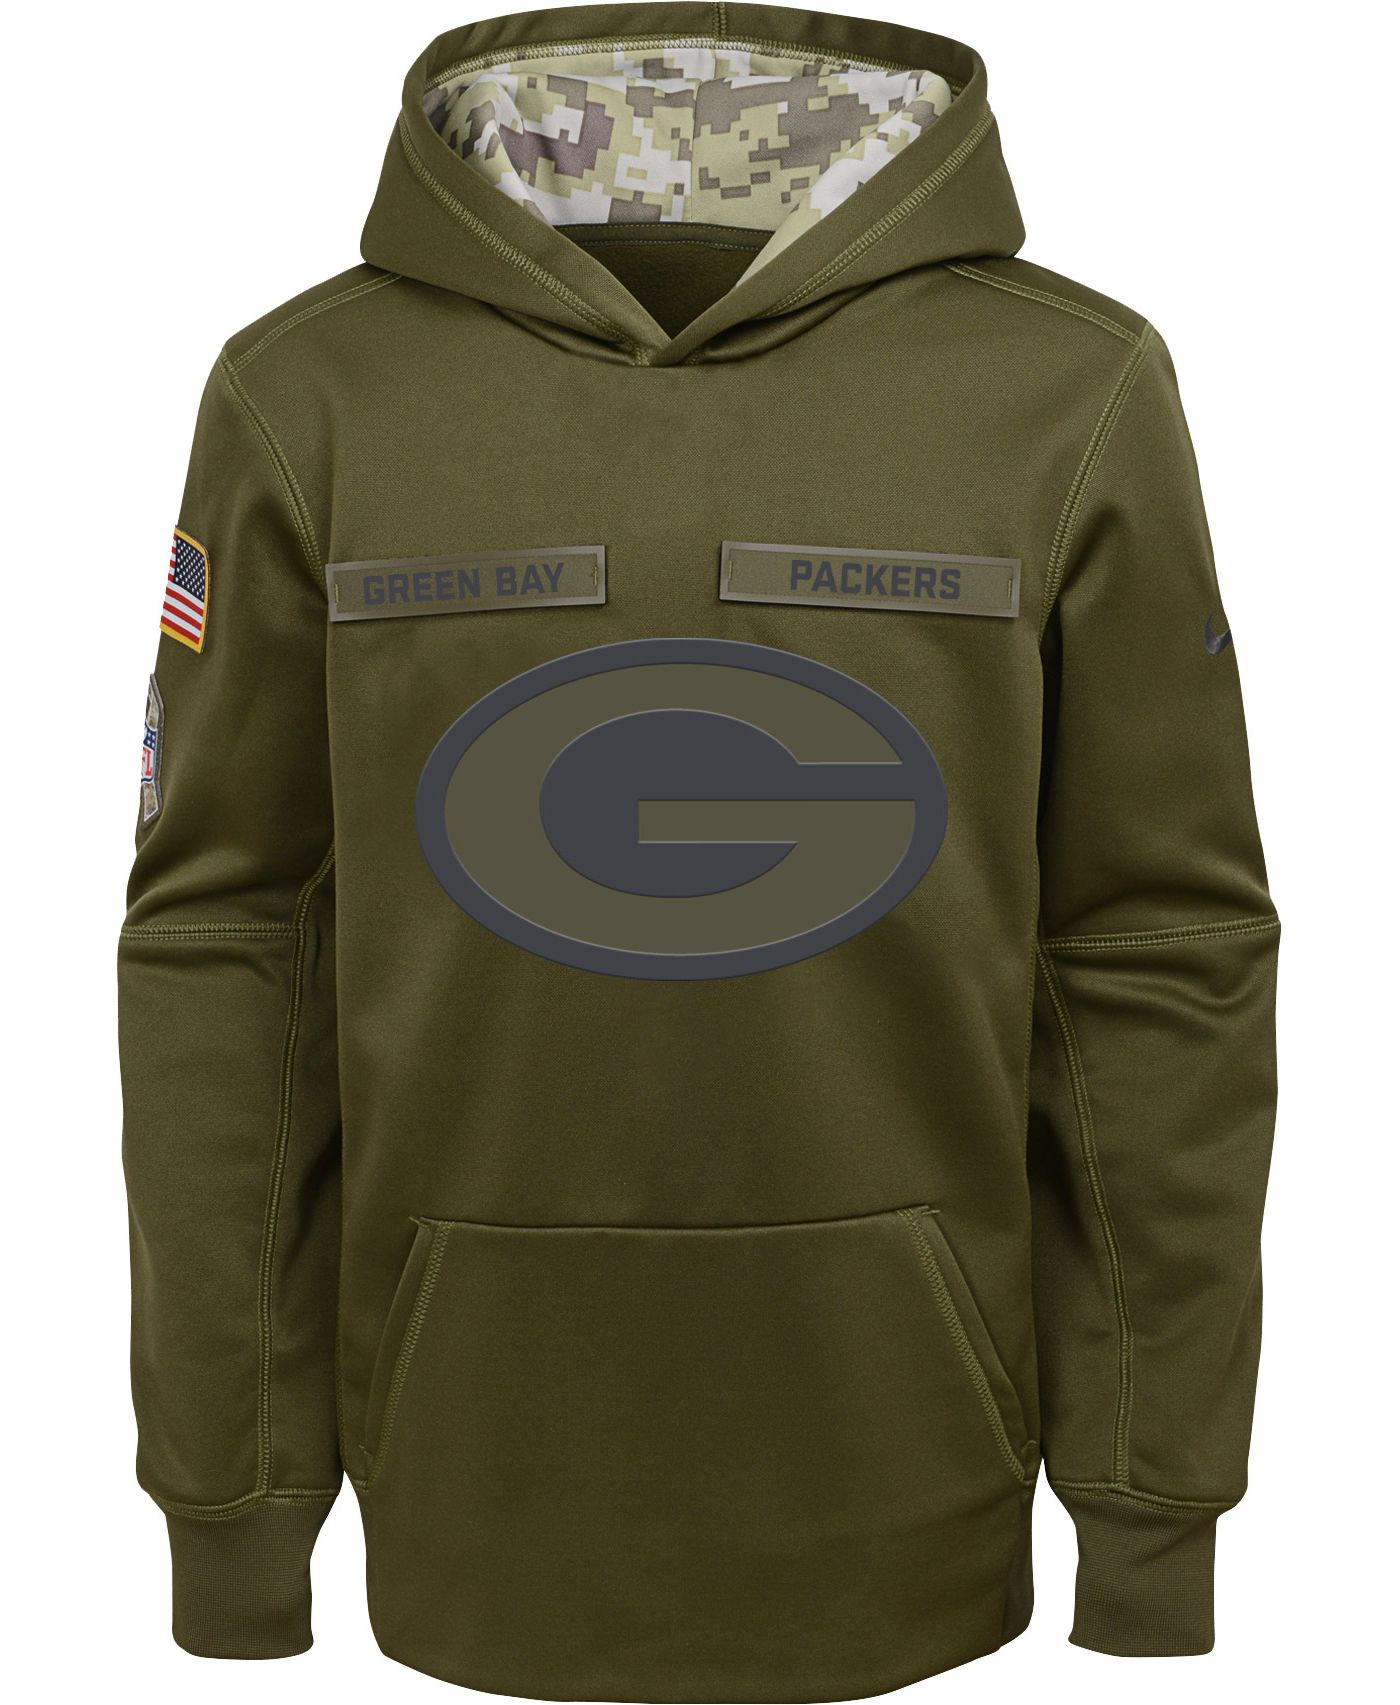 Nike Youth Salute to Service Green Bay Packers Therma-FIT Olive Performance Hoodie